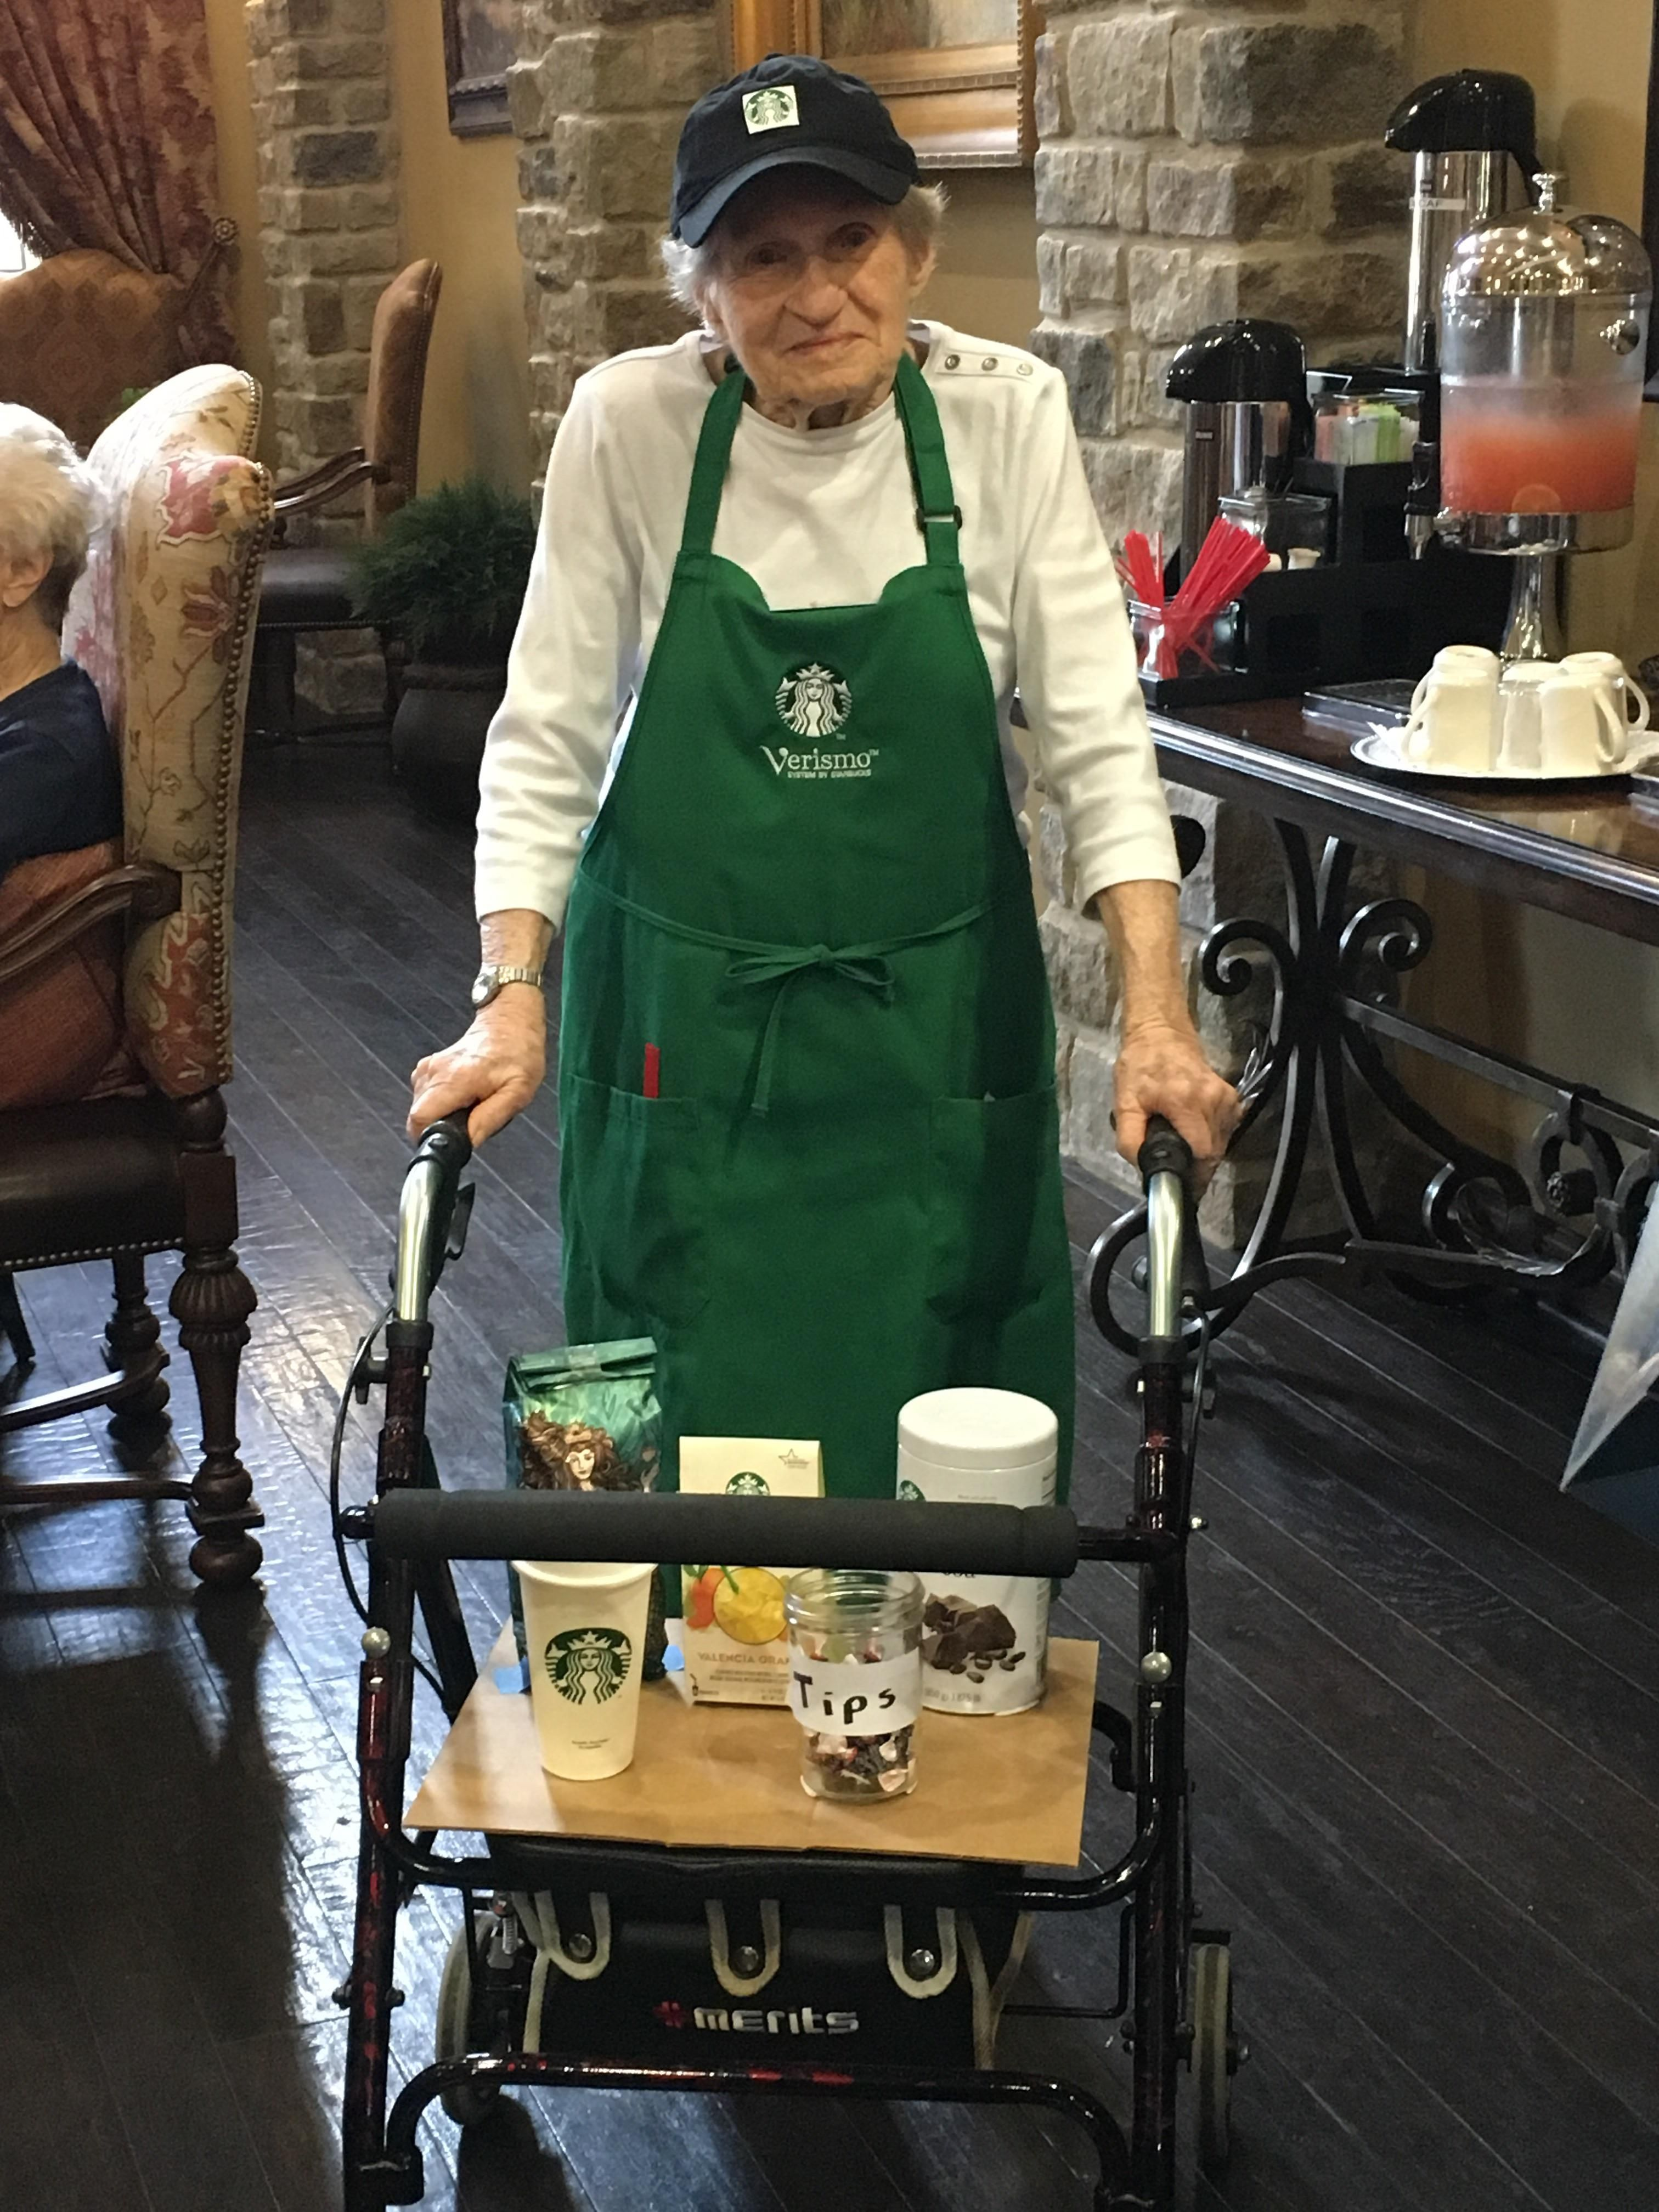 My 96 y/o grandmother wanted to dress up like a Starbucks barista this Halloween. I think she hit it out of the park.